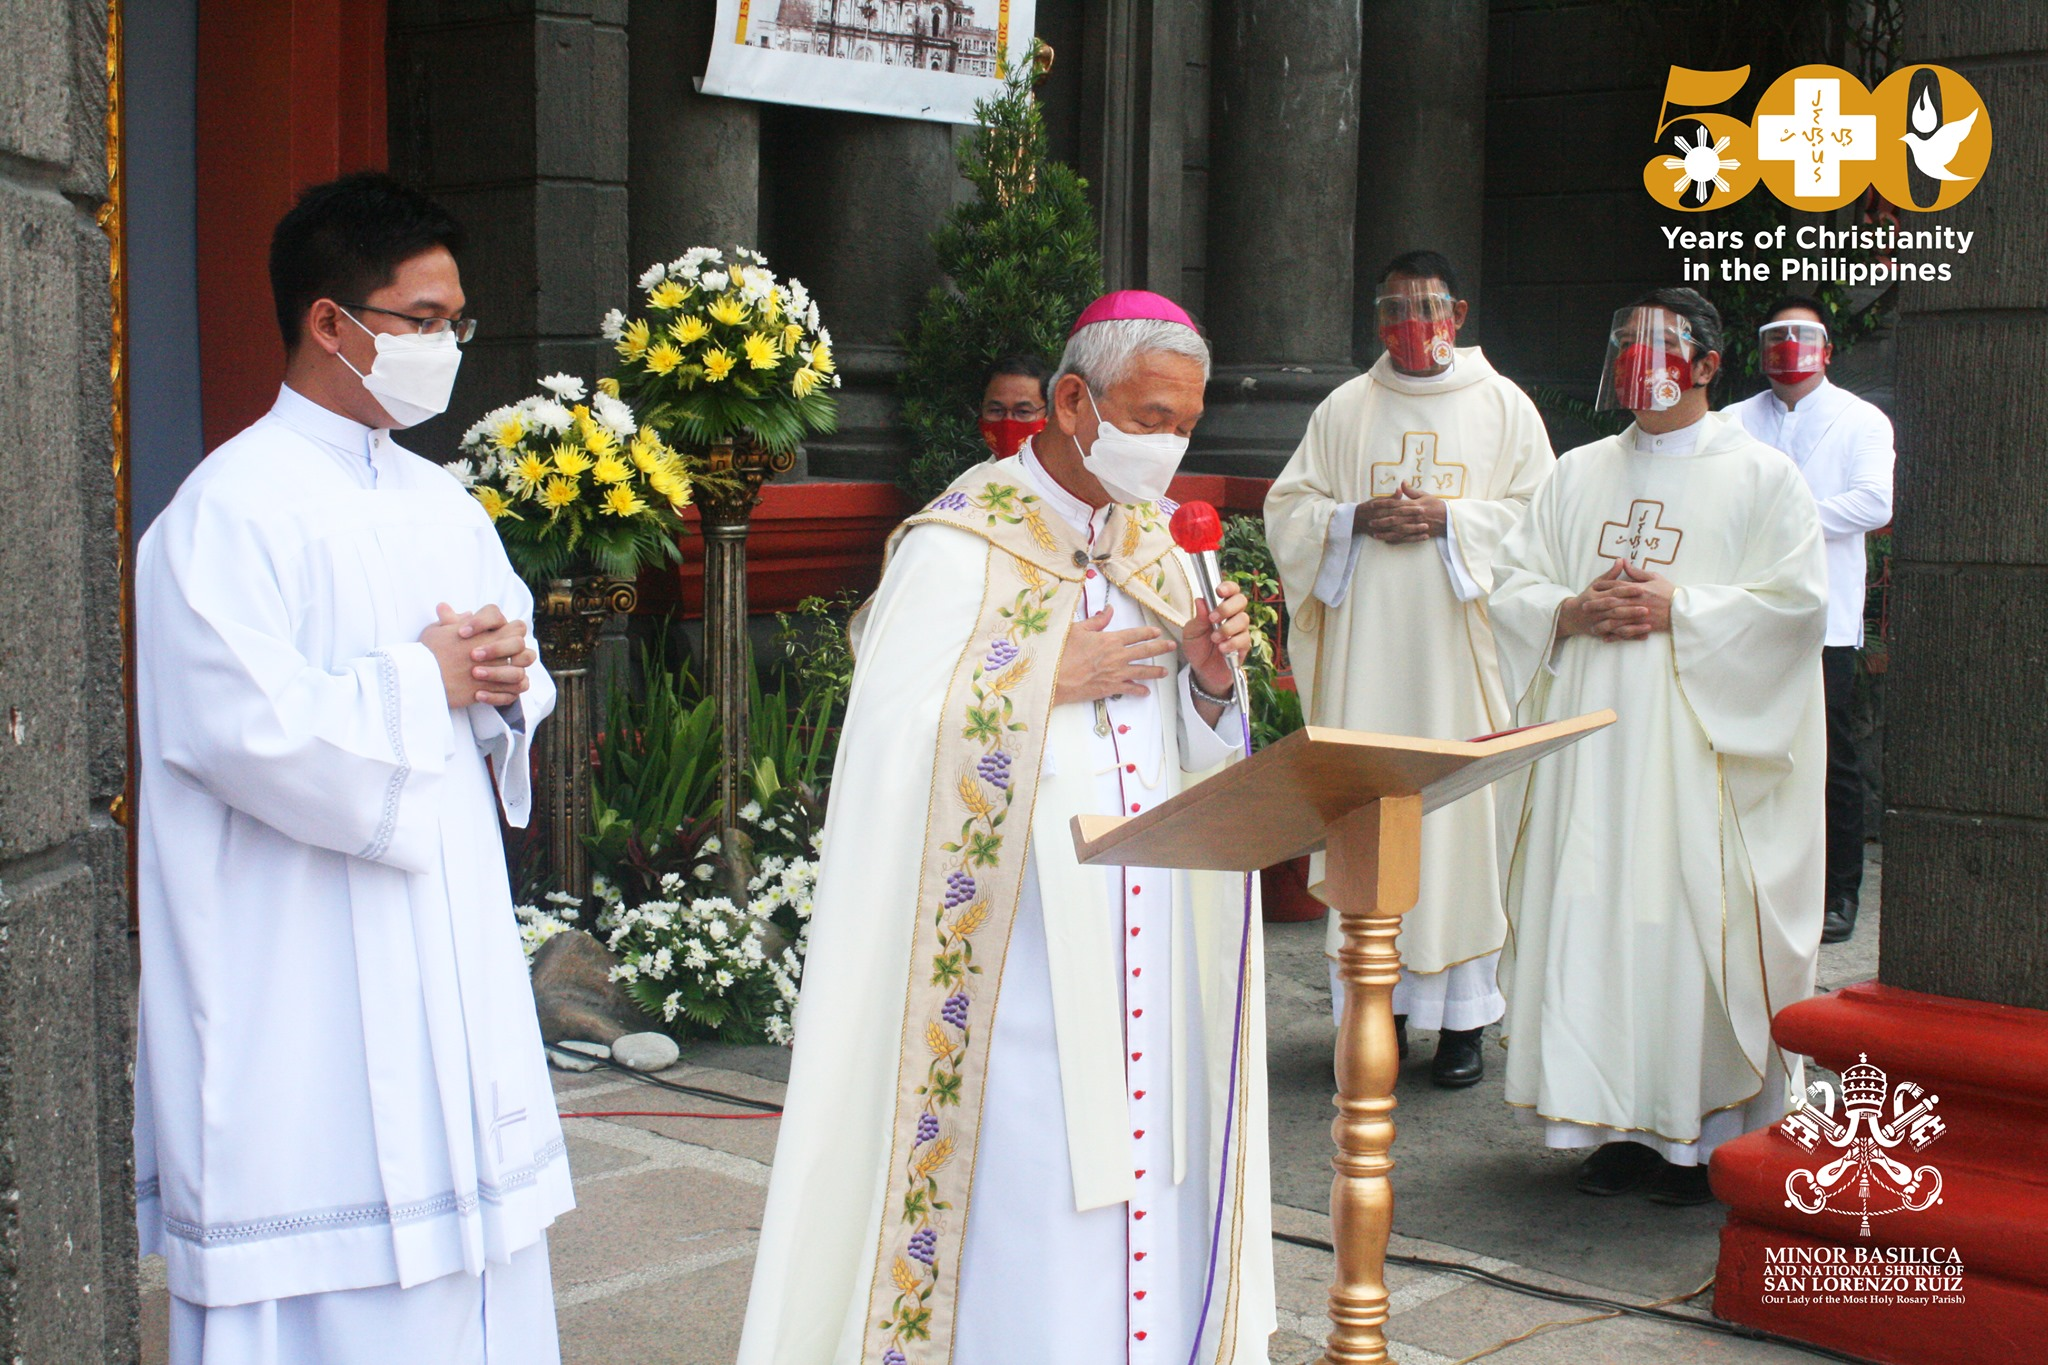 FULL TEXT | Homily of Bishop Broderick S. Pabillo, Apostolic Administrator of Manila during Mass for the Opening of Jubilee Door of Minor Basilica and National Shrine of San Lorenzo Ruiz on April 25, 2021, at 10 am